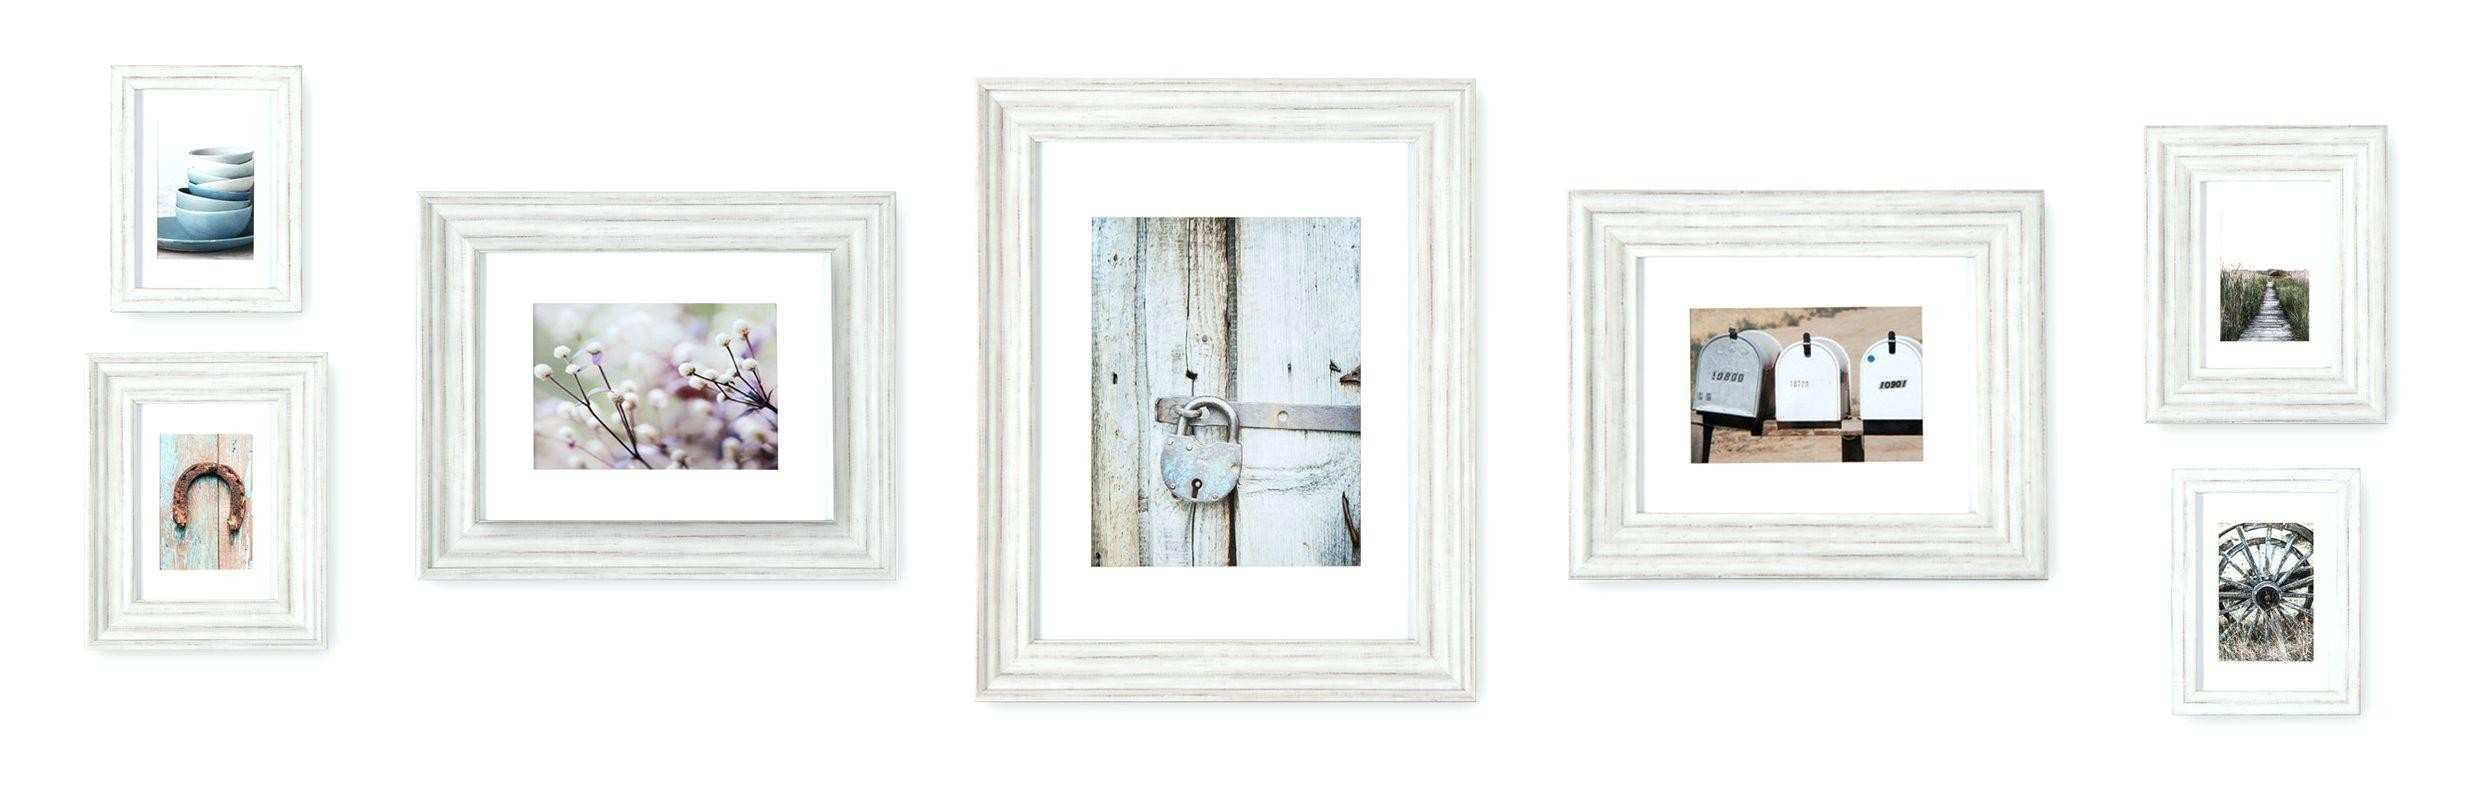 Picture Wall Gallery Frame Set New Picture Frame Set Setup Ideas ...